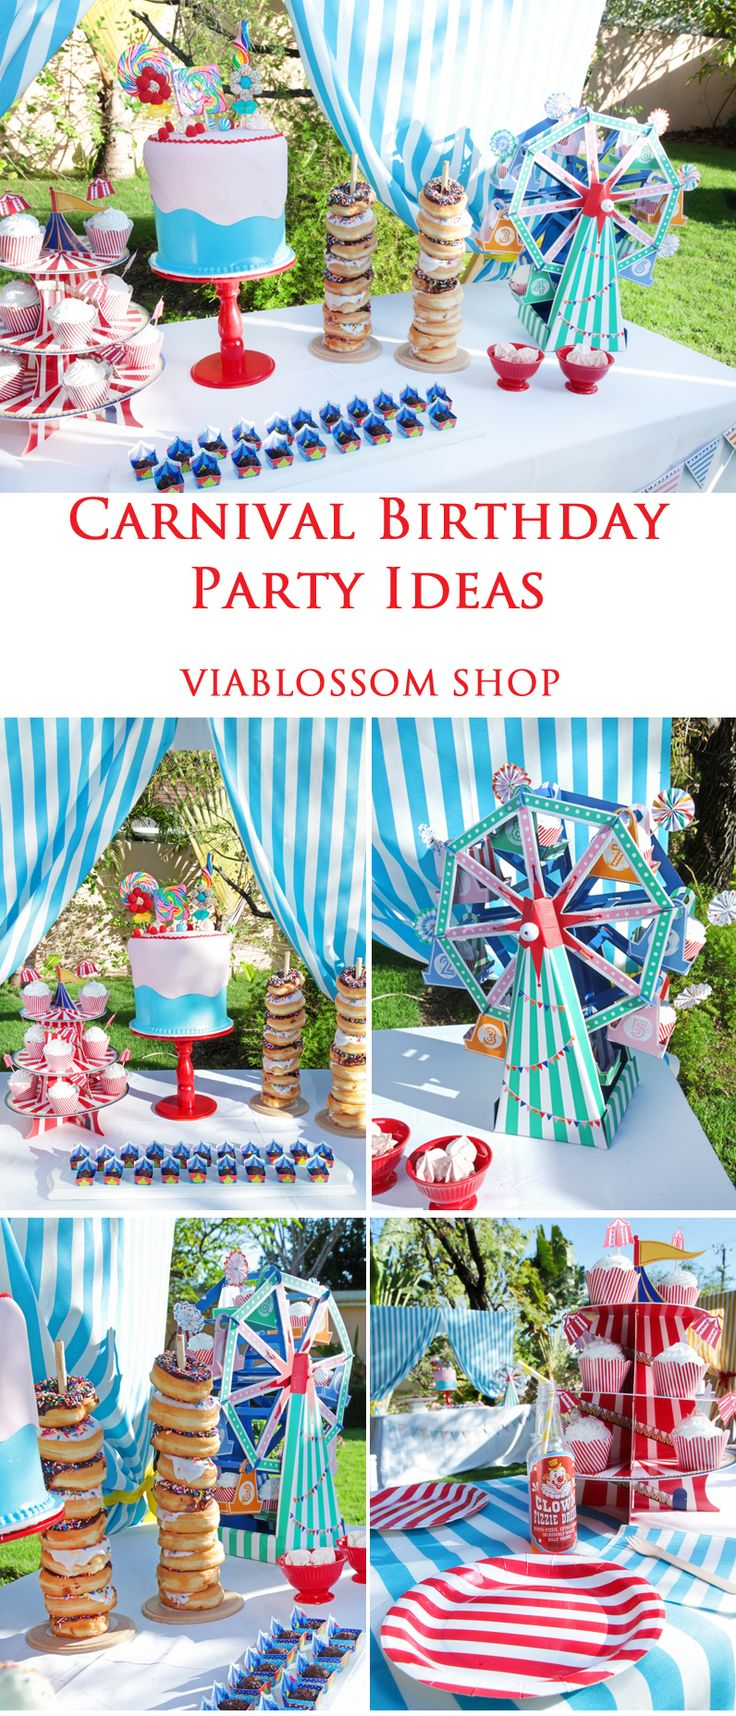 Carnival Birthday Party Ideas at the Via Blossom Blog!!